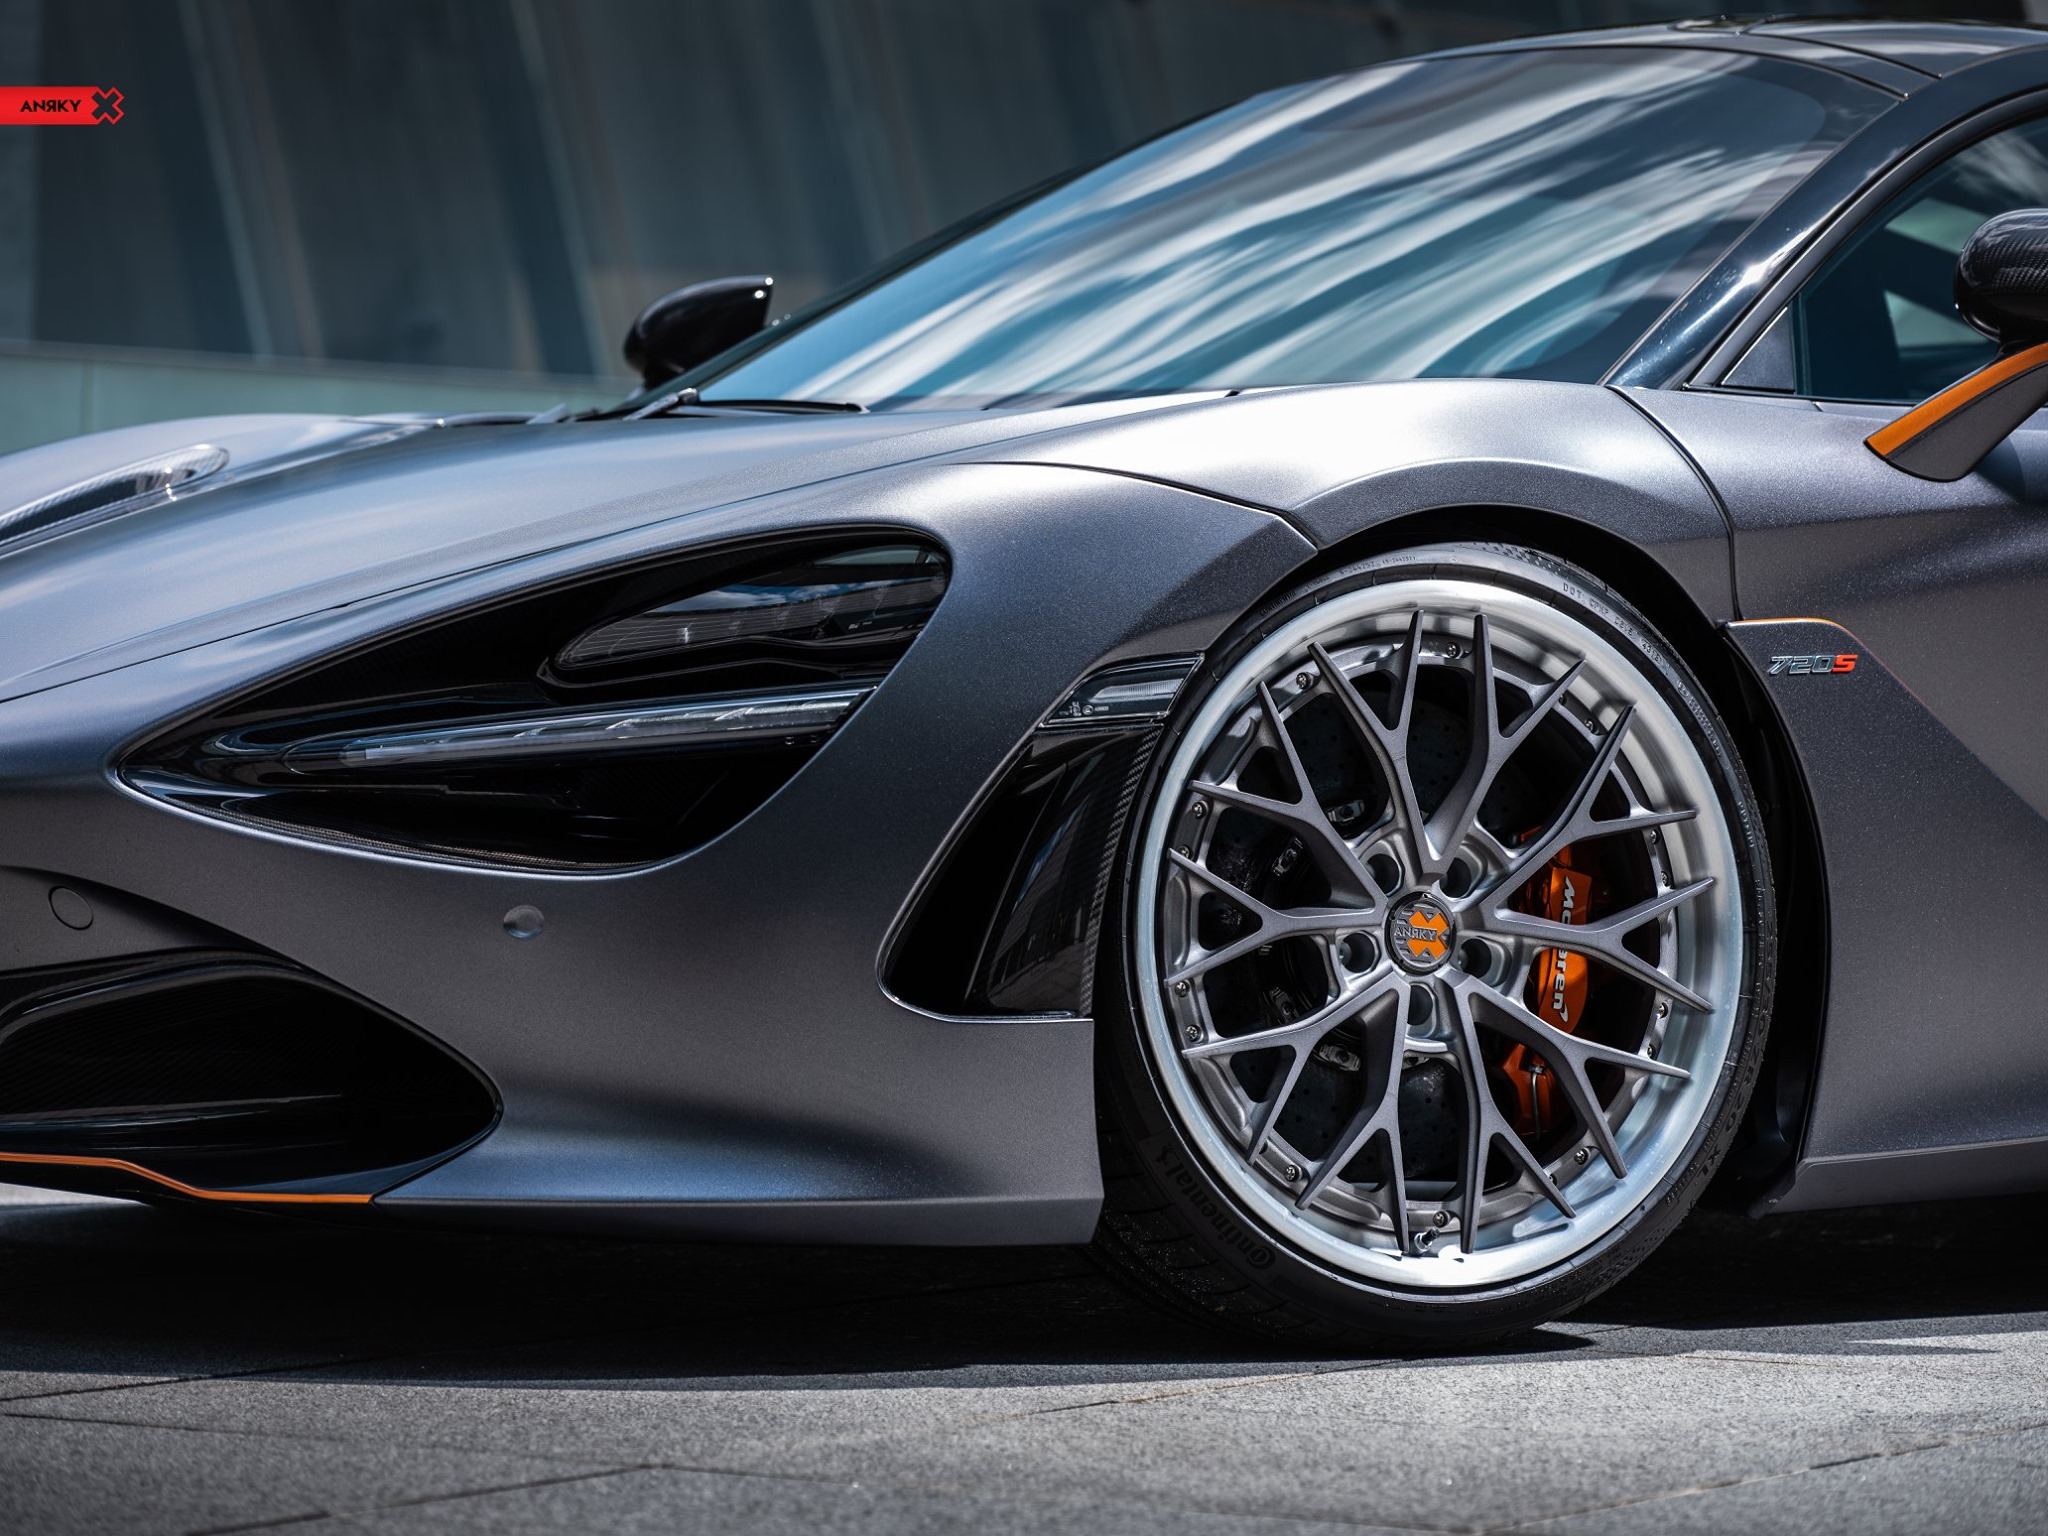 anrky-wheels-mclaren-tuning